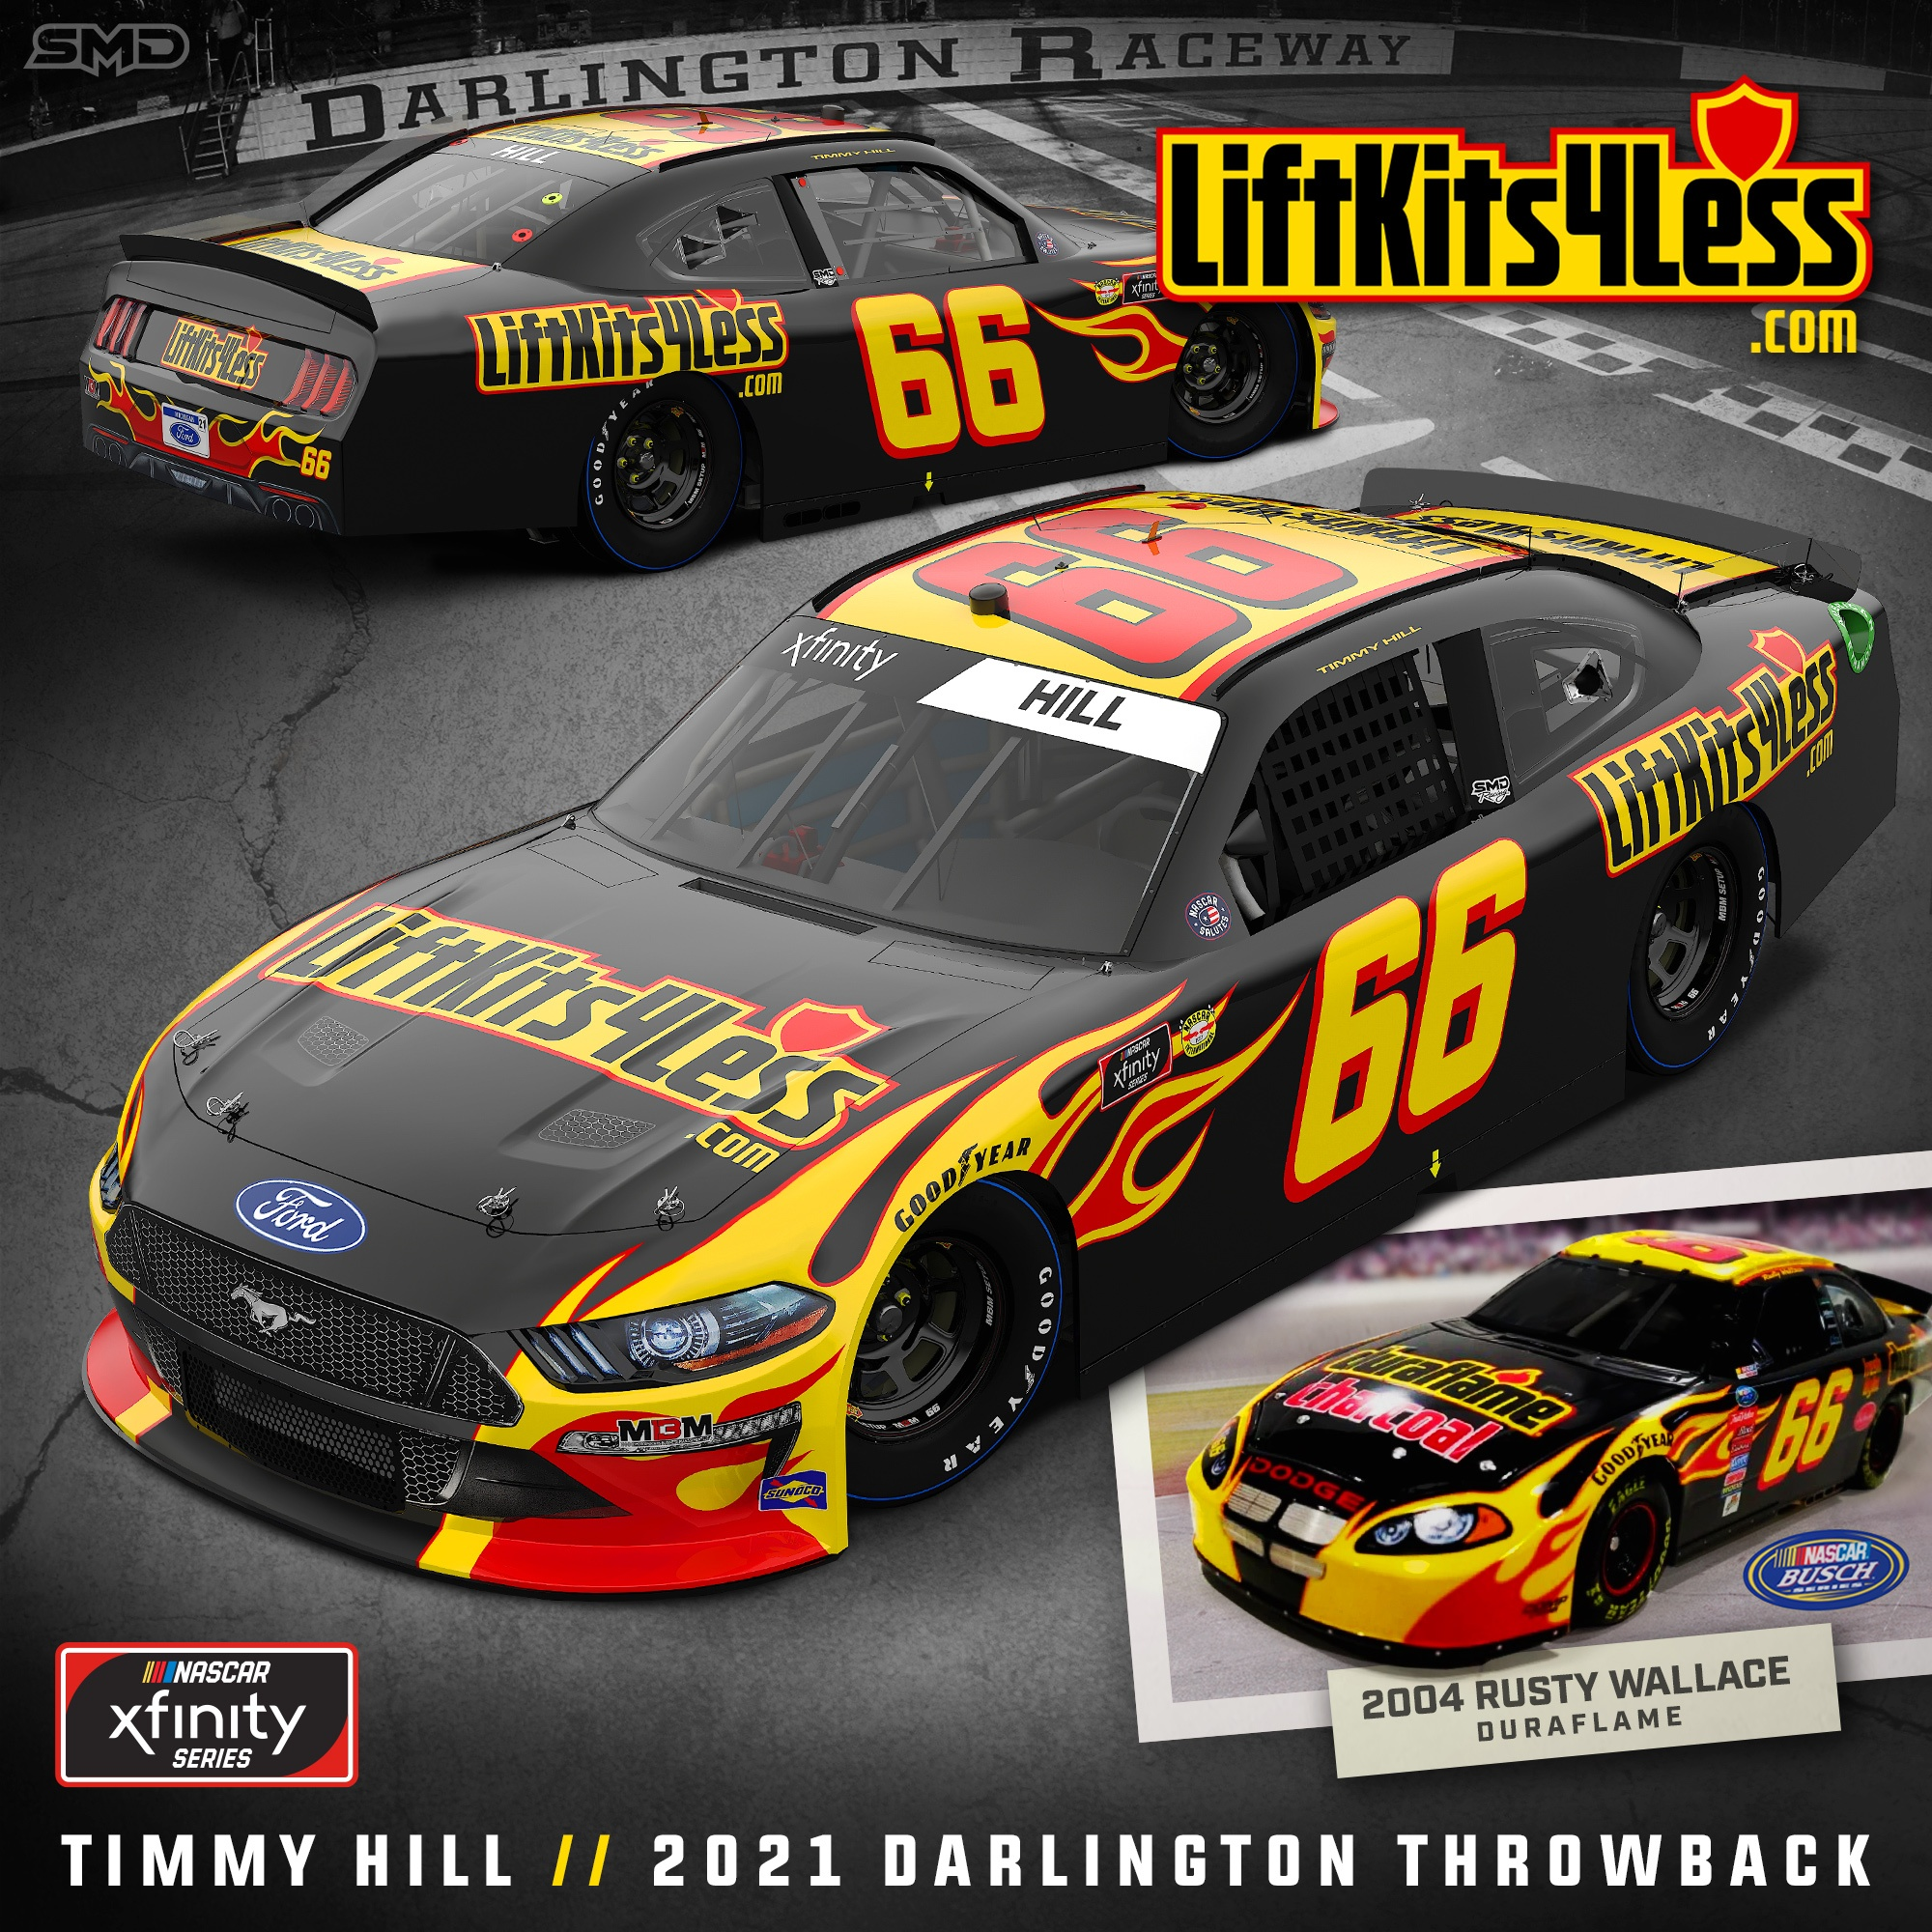 Timmy Hill Throwback